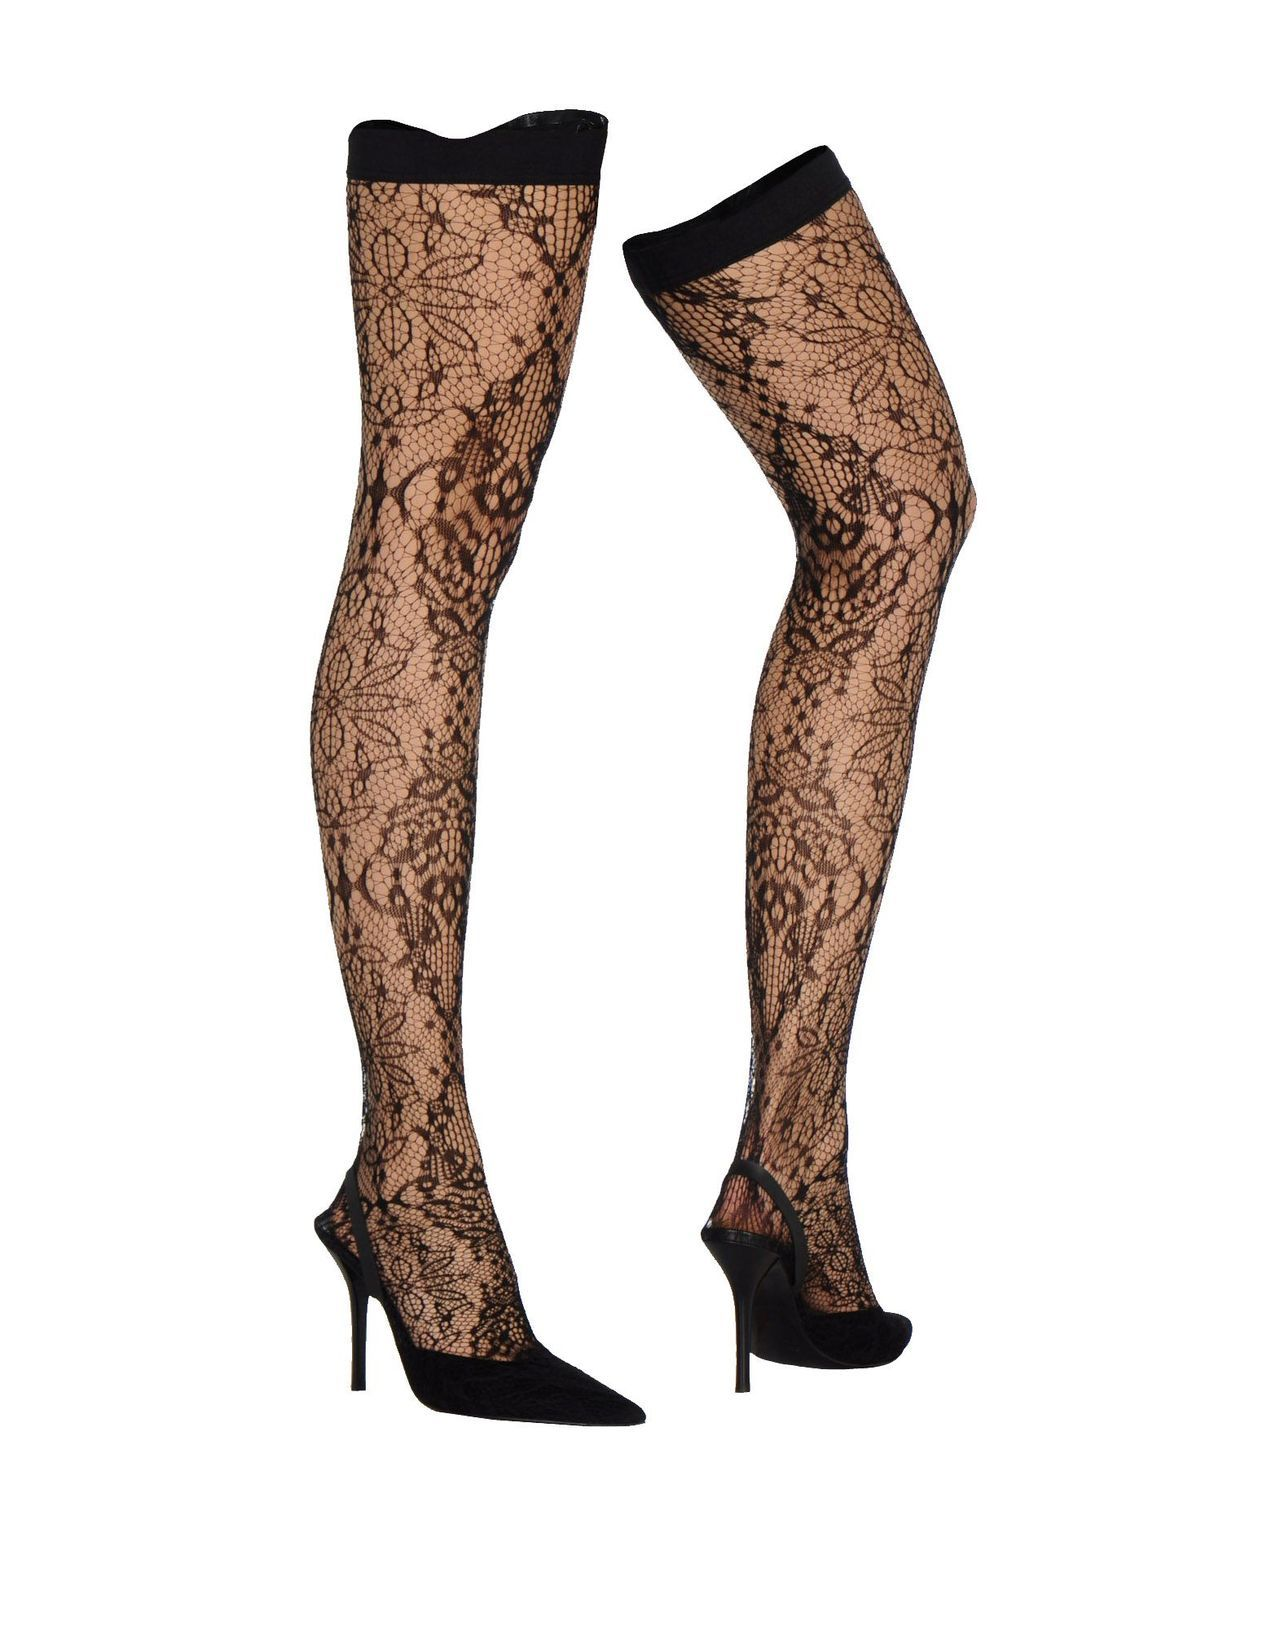 sling back heels with attached lace hosiery • helmut langUS $515